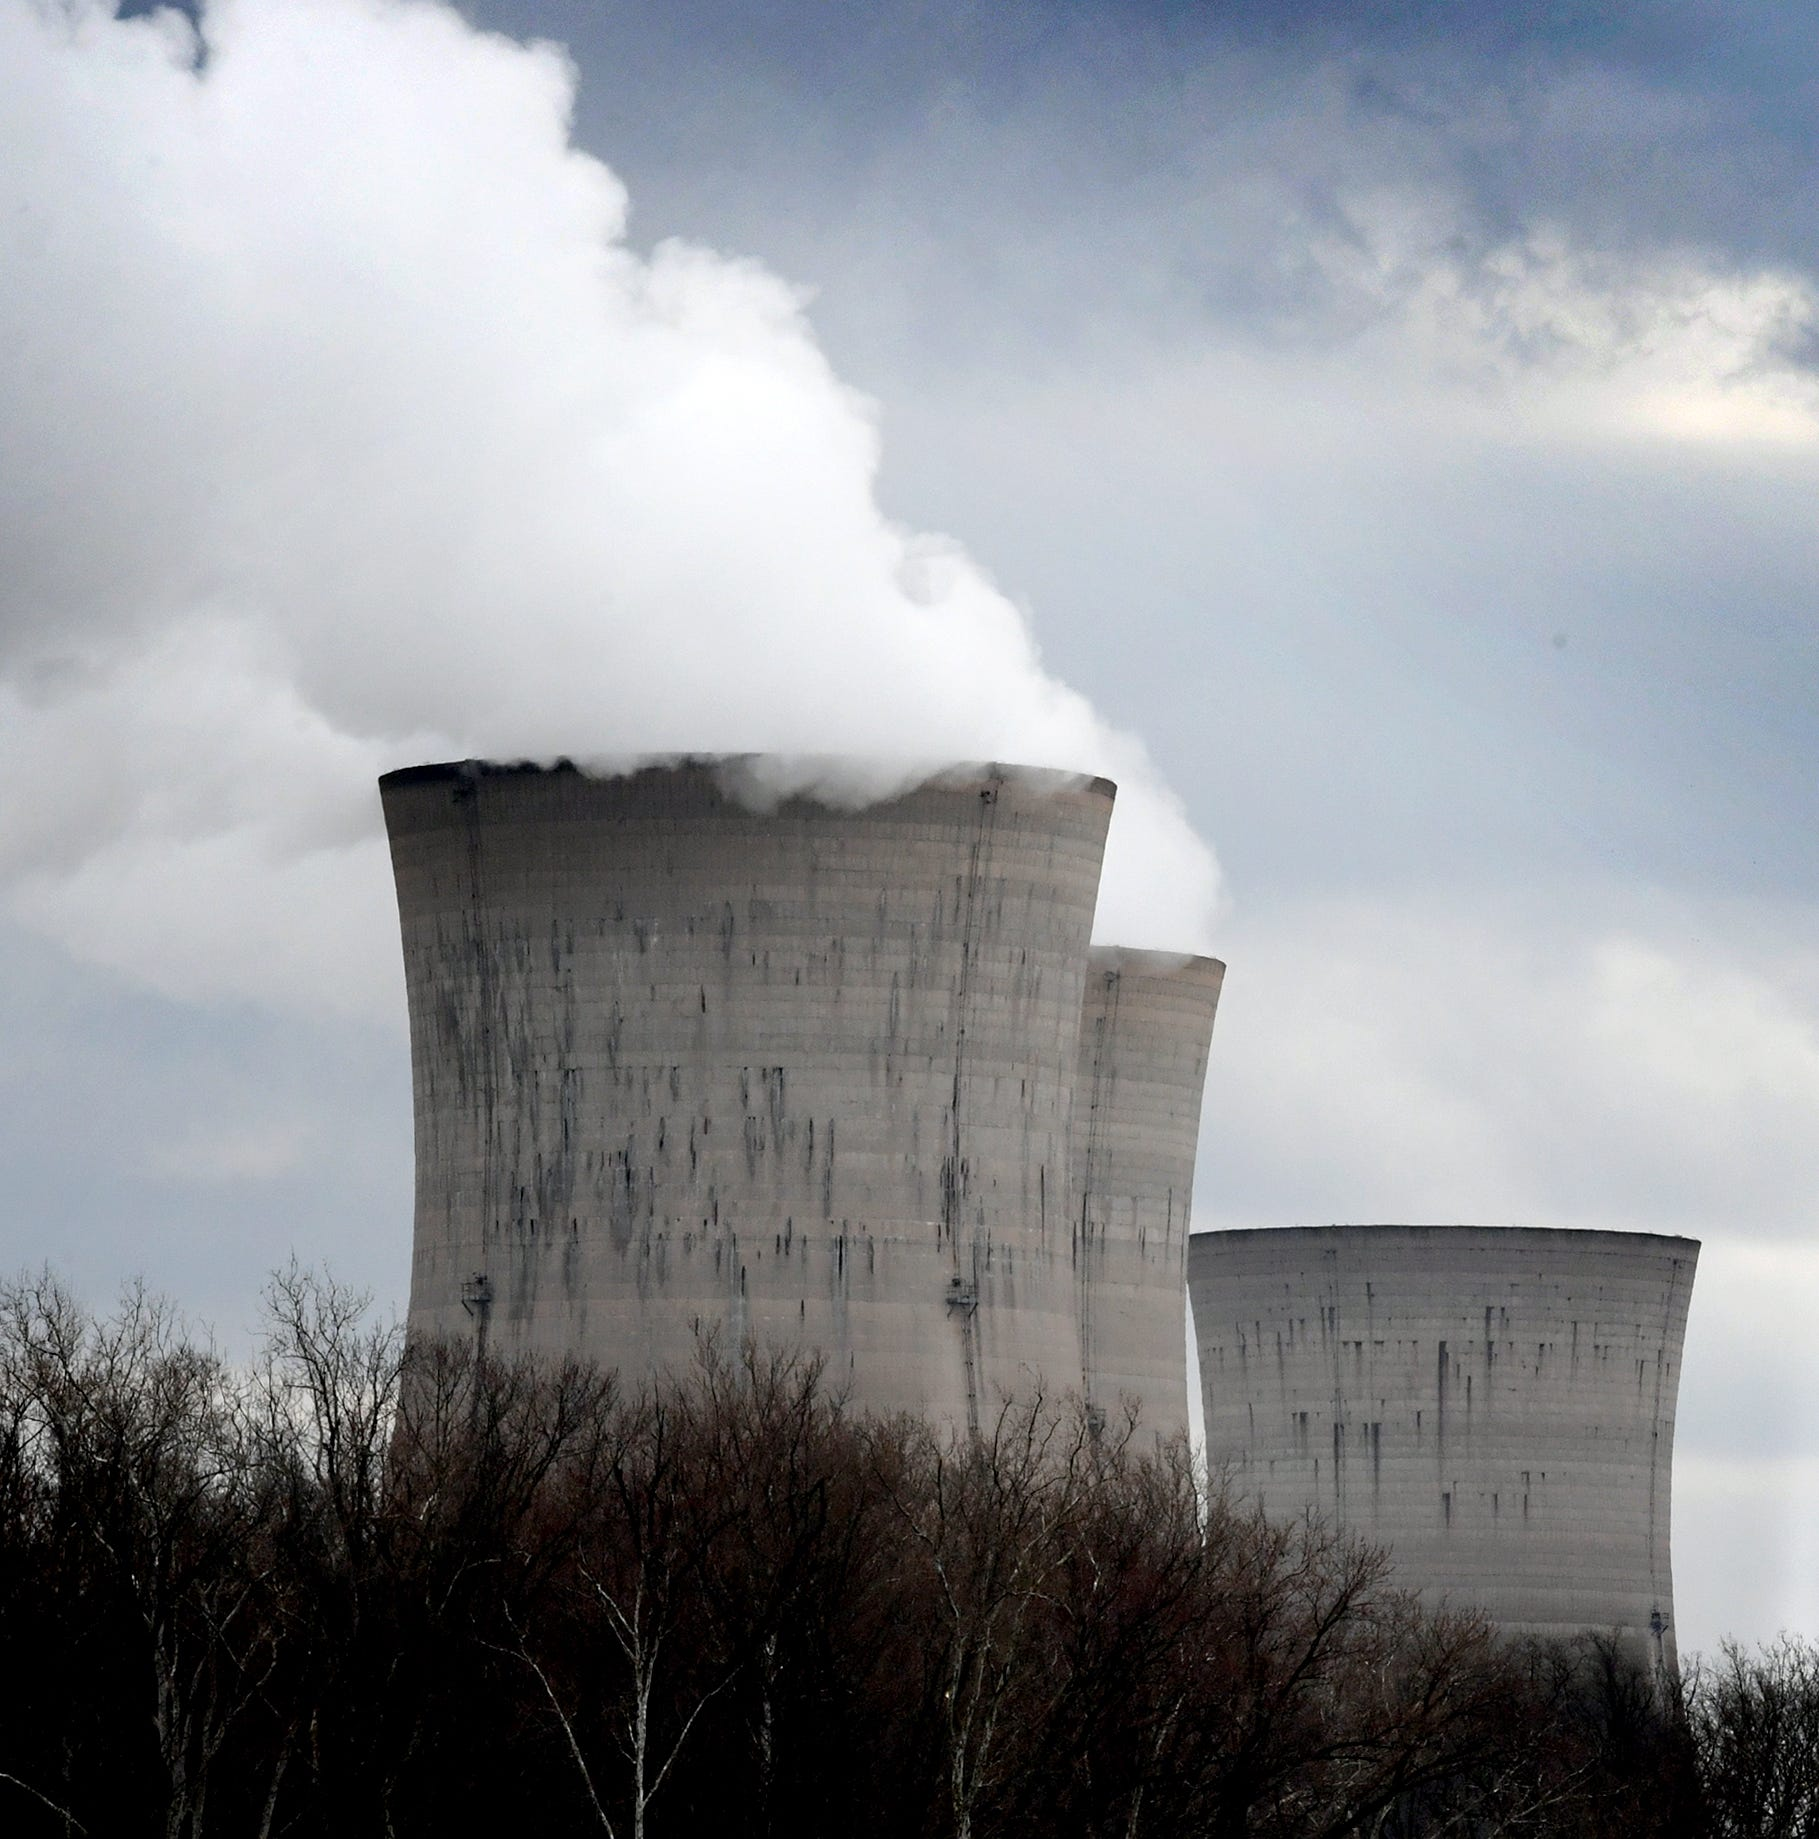 LETTER: Nuclear power debate is about people